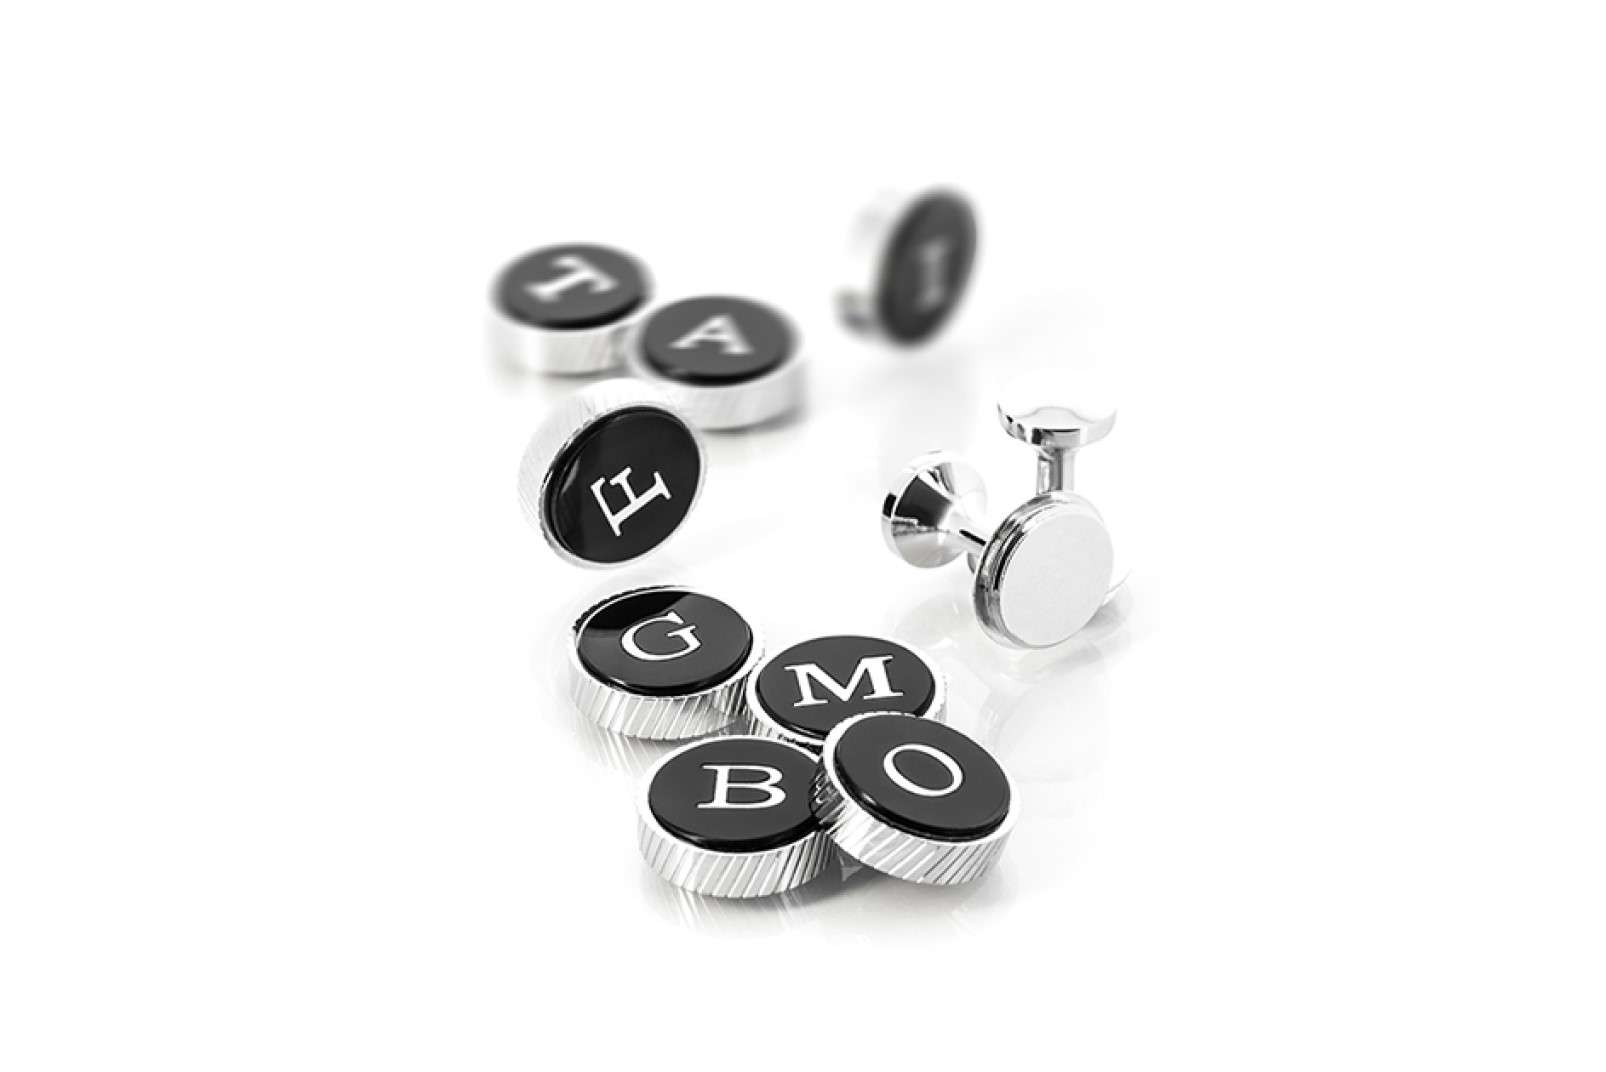 Boggi Milano cufflinks with metal base and interchangeable screw-on letters